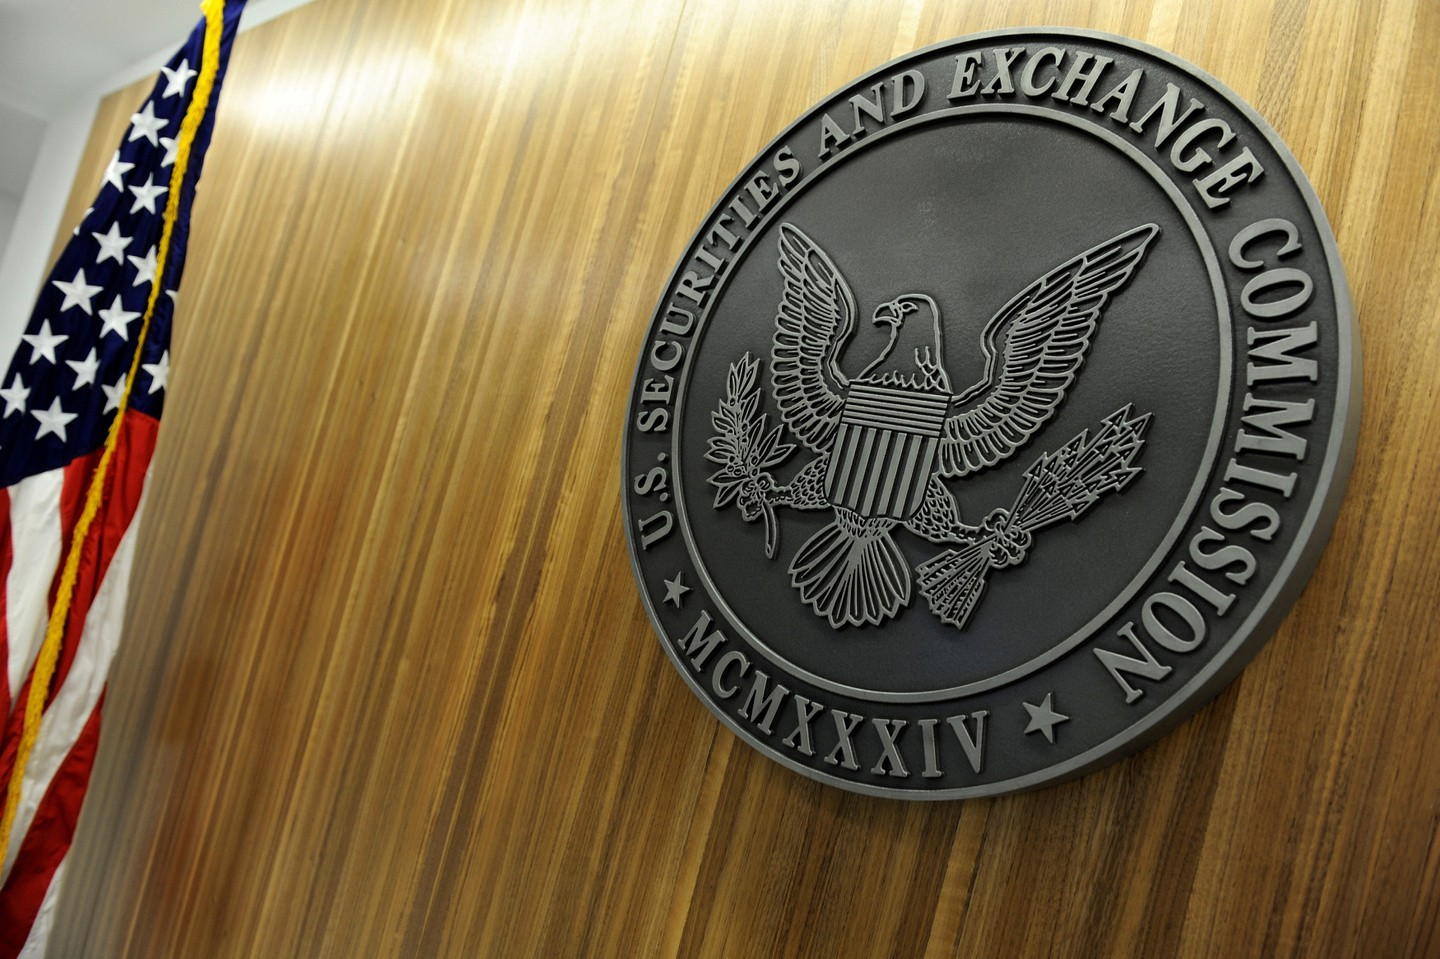 /security-tokens-in-the-us-regulations-and-exemptions-under-the-sec-laws-4640b5570948 feature image